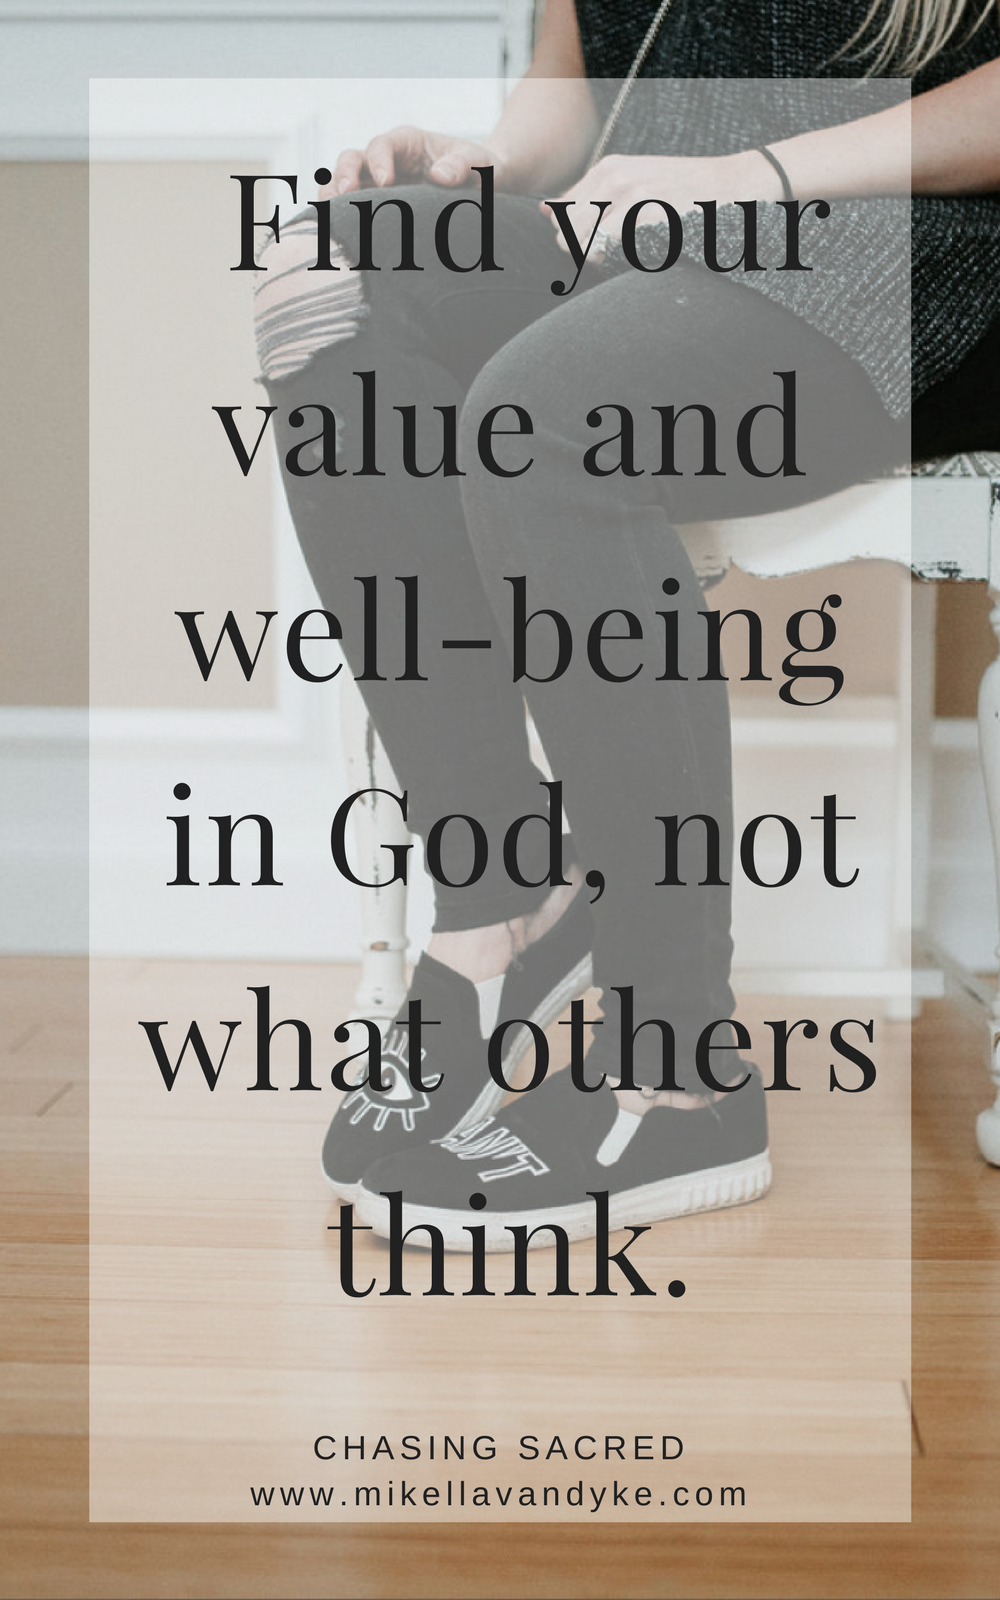 Find your value and well-being in God, not what others think.